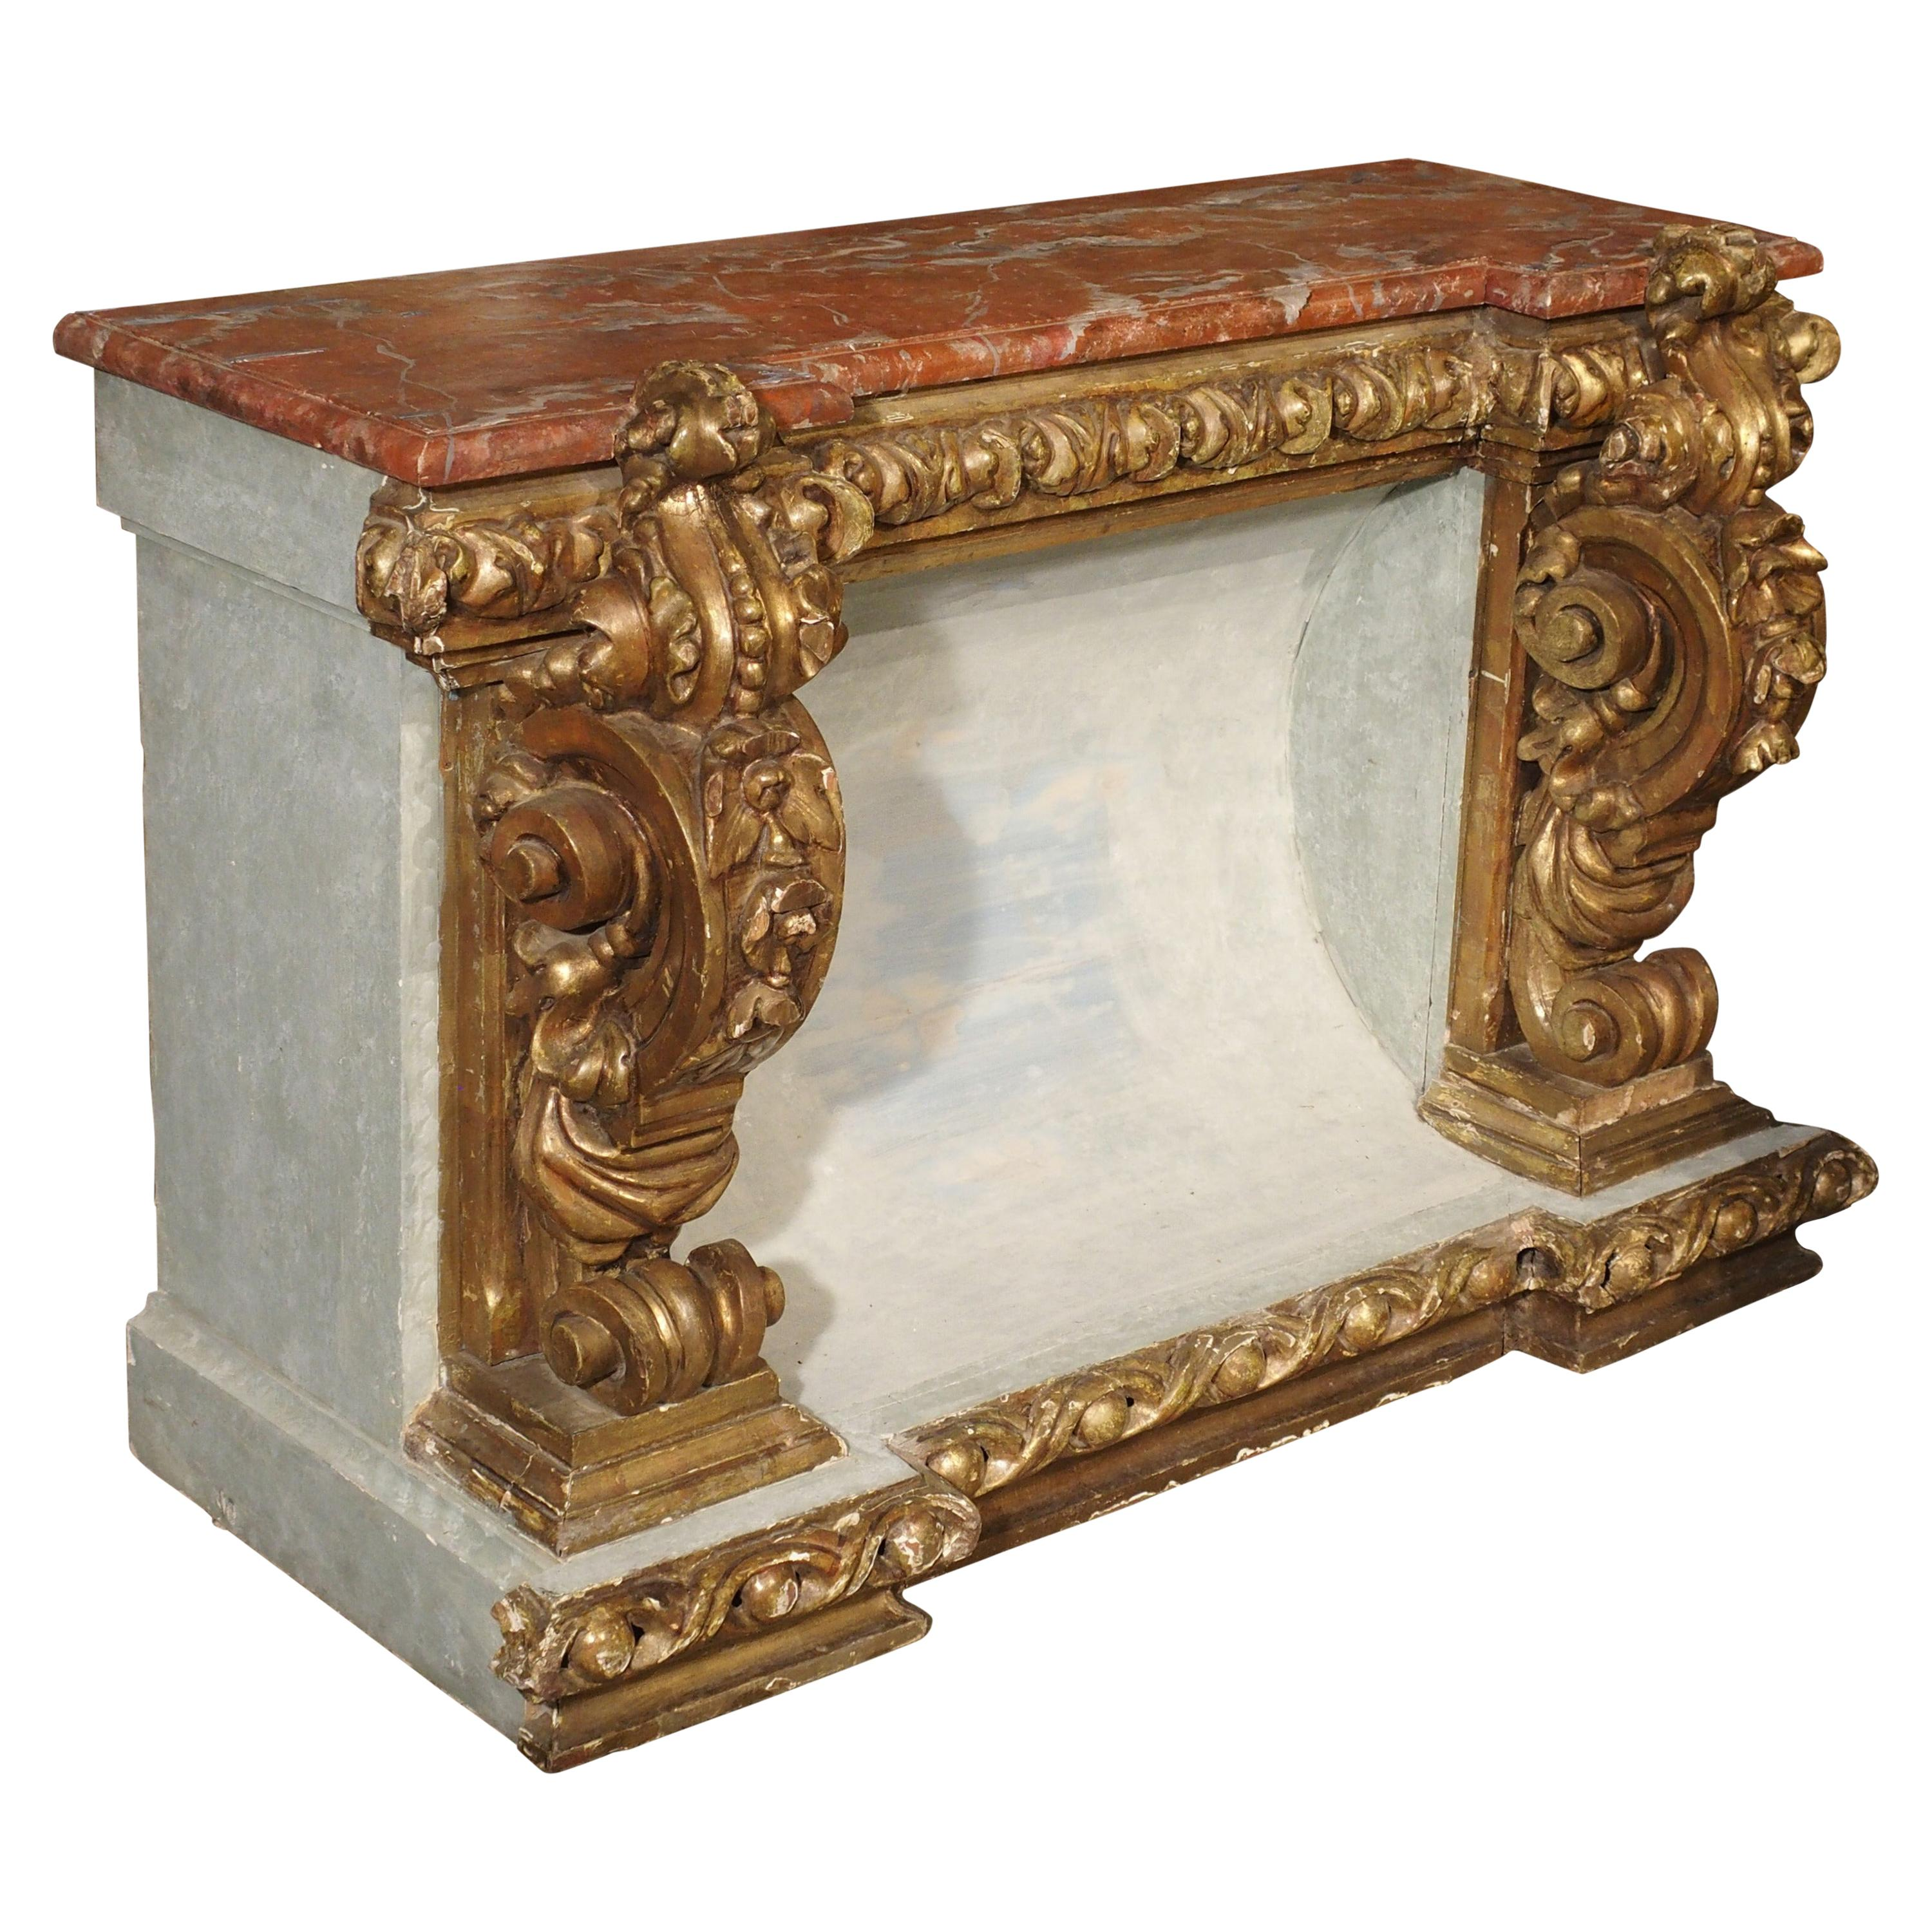 Baroque Style Polychrome and Giltwood Console with Faux Marble Top